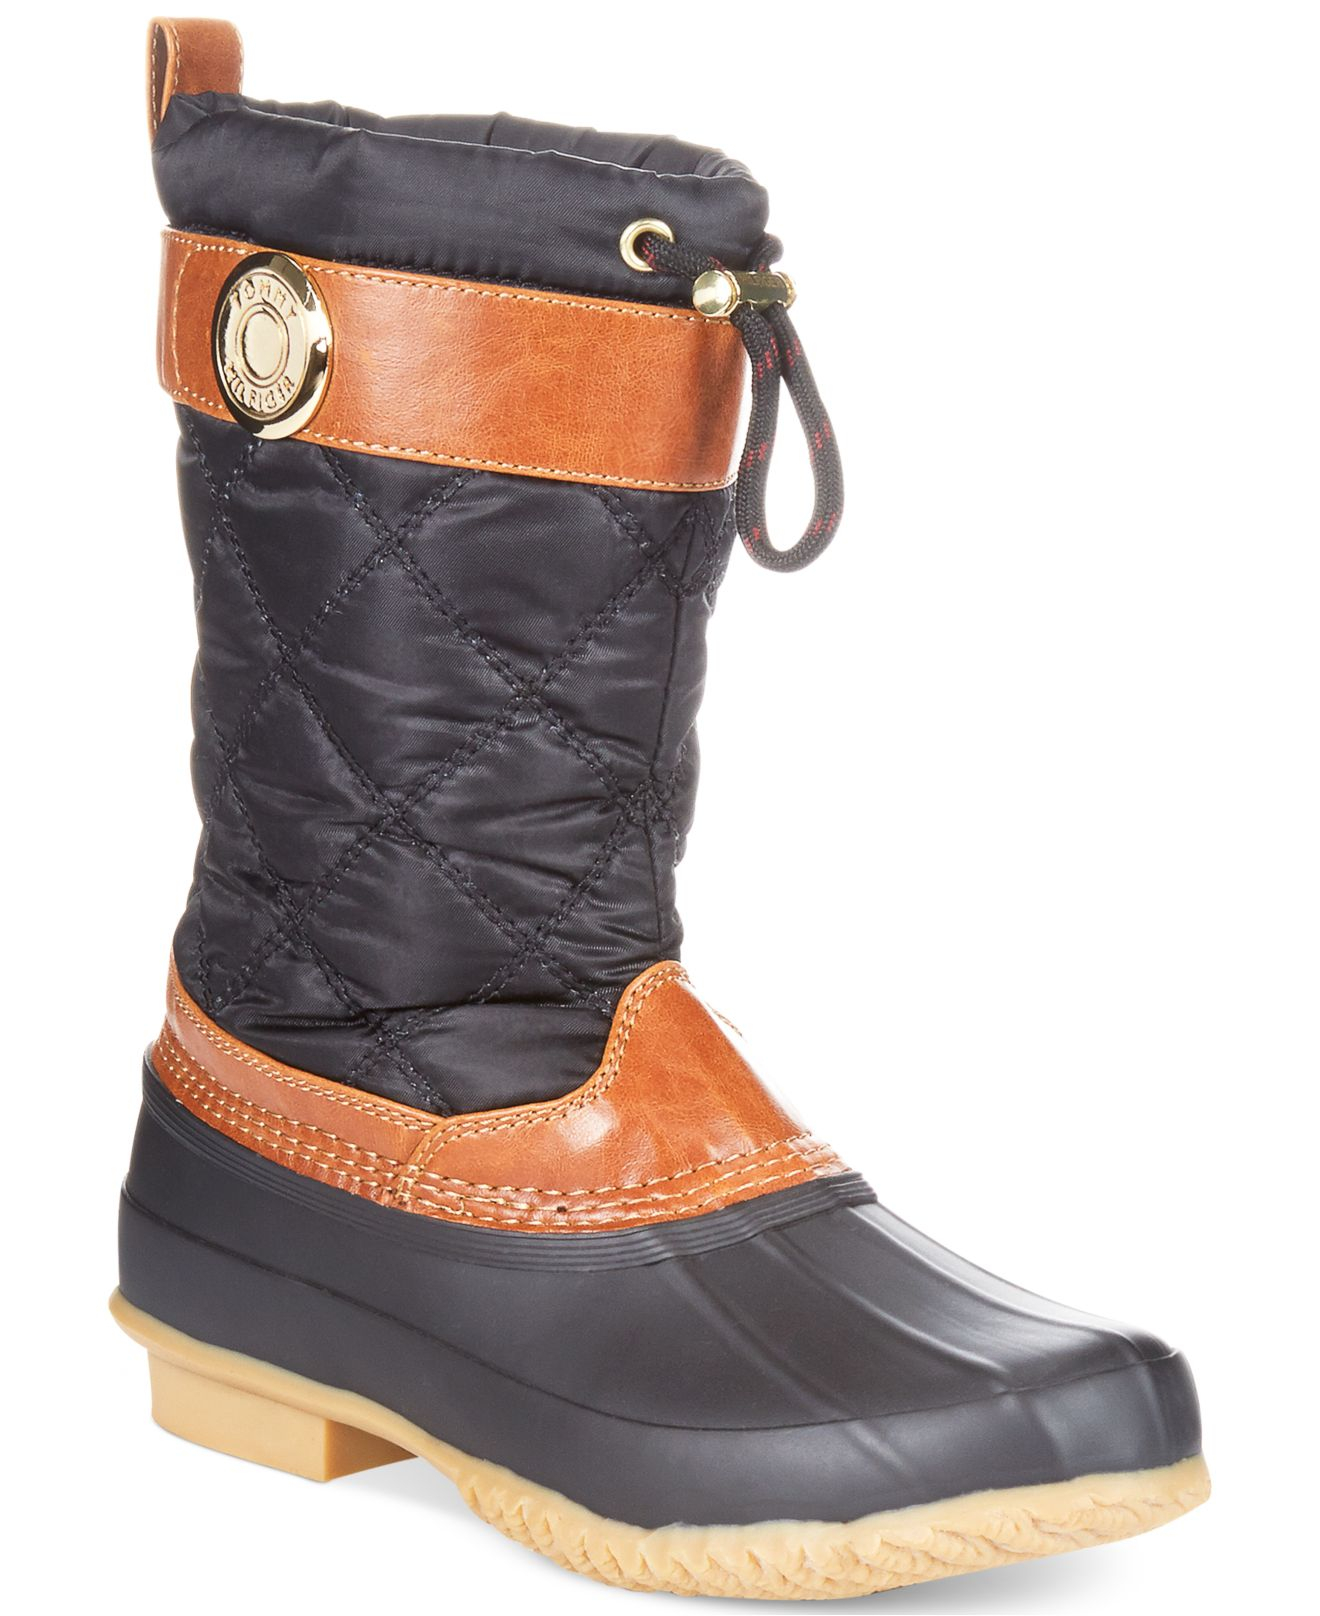 lyst tommy hilfiger women 39 s arcadia duck boots in black. Black Bedroom Furniture Sets. Home Design Ideas